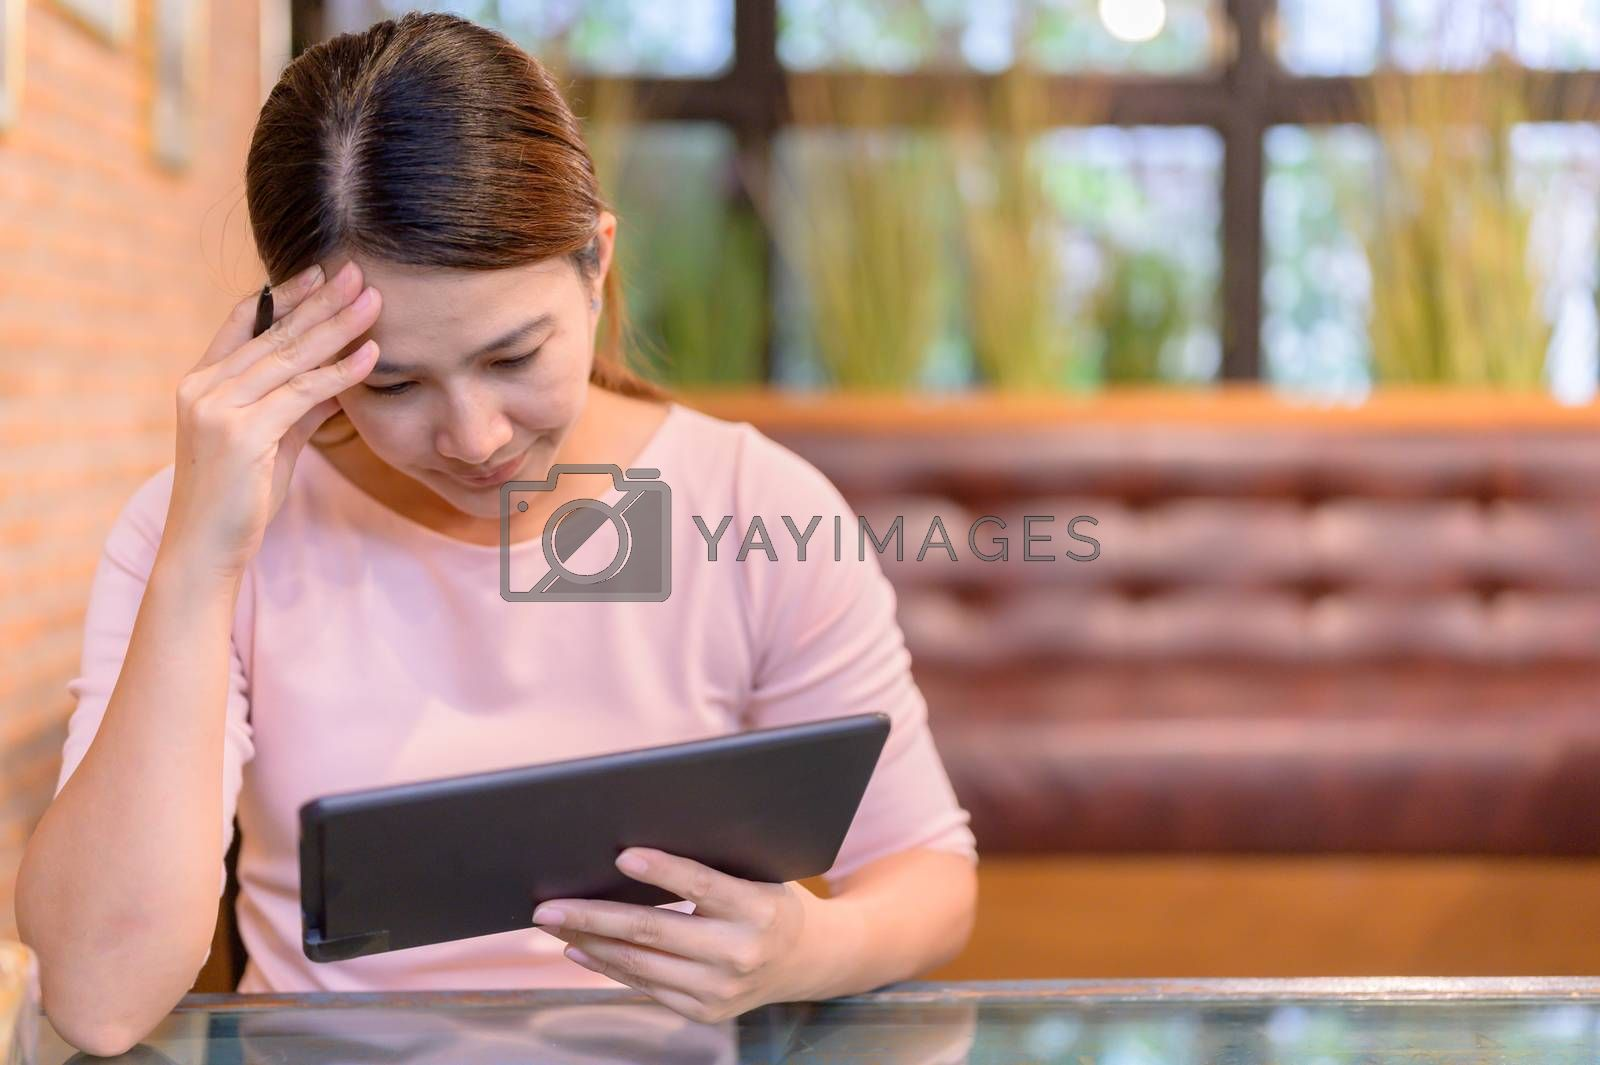 Unemployment and Mental health problem. Corona virus job losses in Asia. Thai businesswoman looking for new job on website. Post-traumatic stress disorder (PTSD).